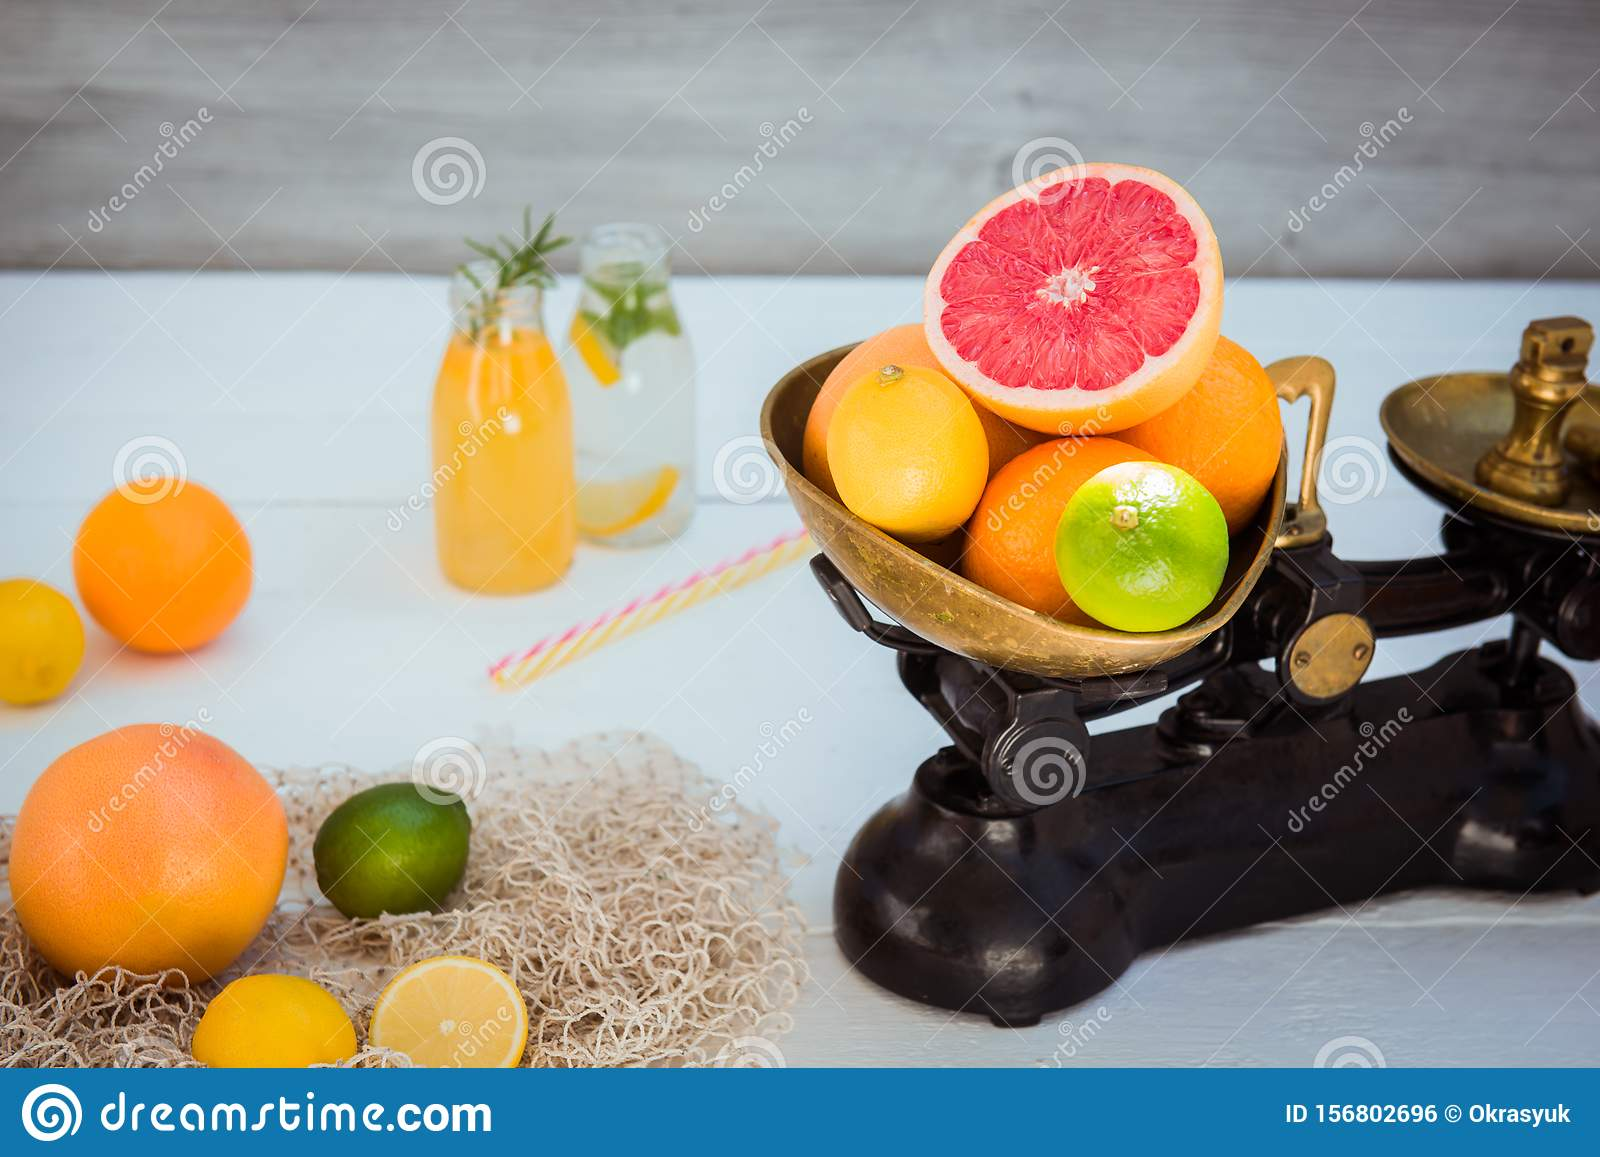 Fresh citrus fruits in vintage scale and several oranges, lemons, grapefruit, lime and homemade drinks on the white wooden table